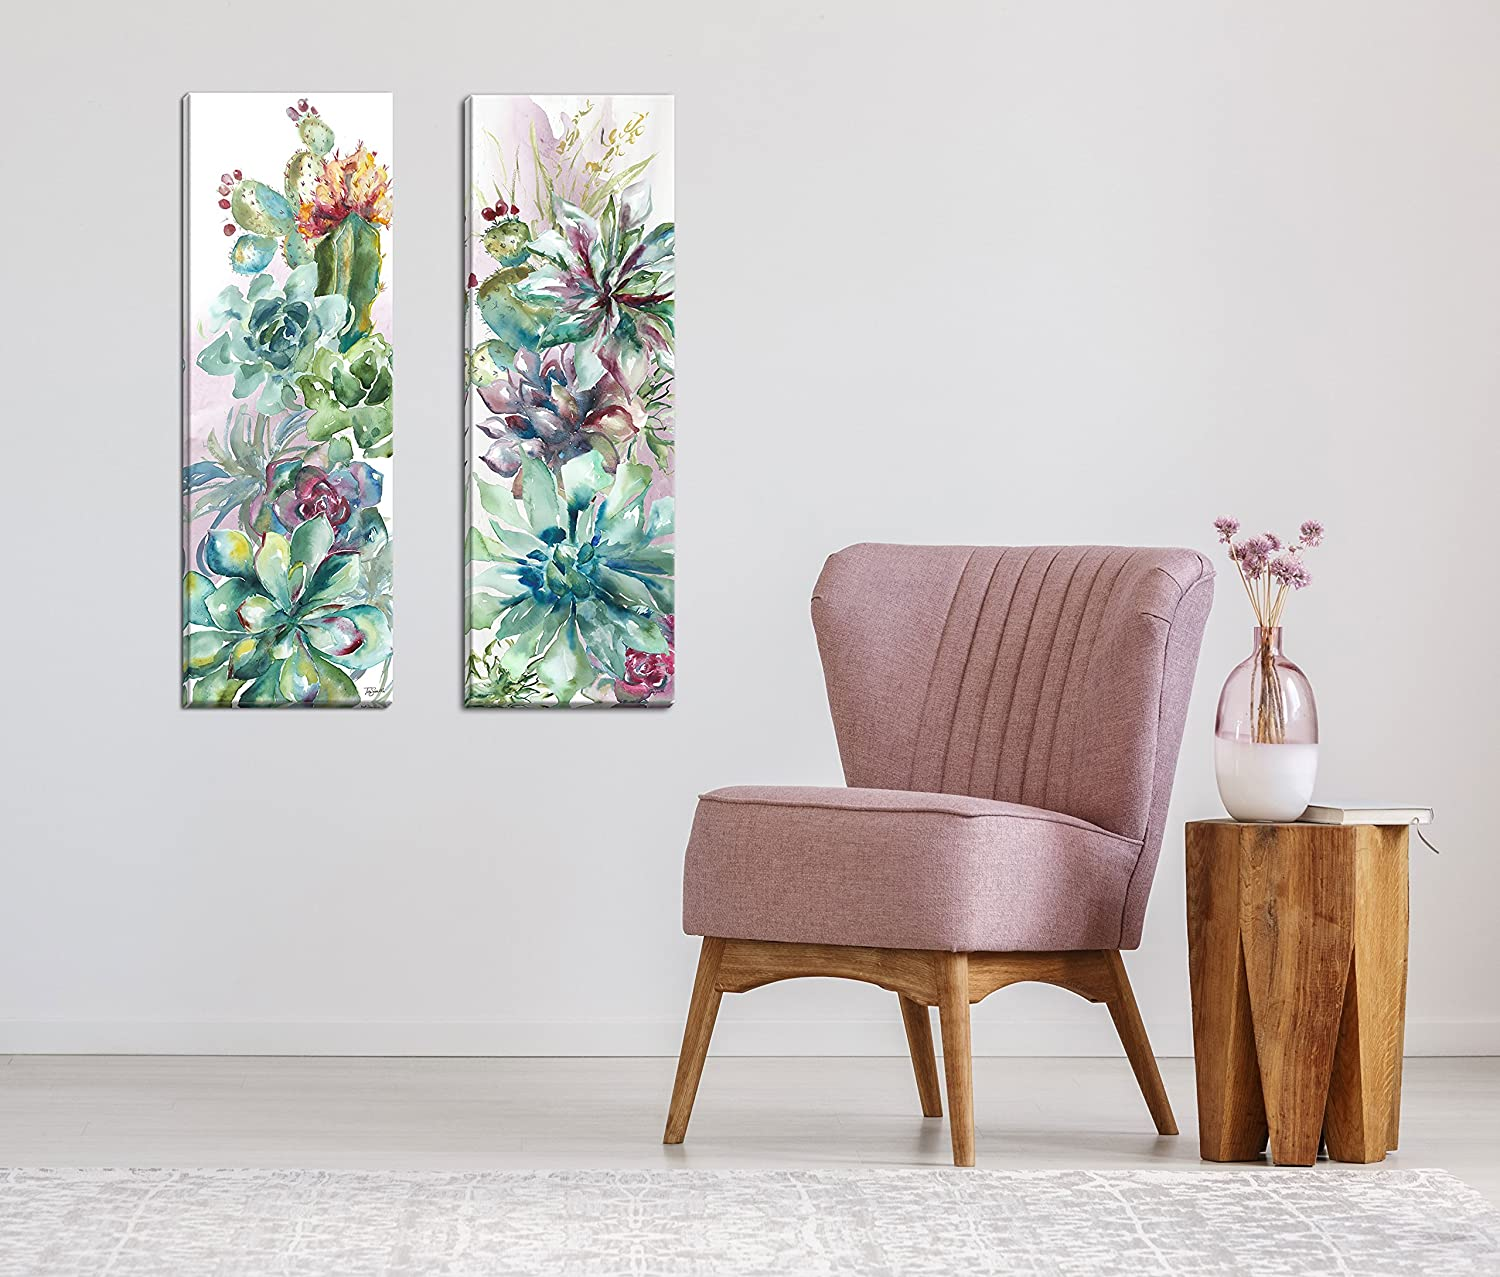 Roaring Brook Beautiful Watercolor-Style Succulent Floral Panels by TRE Sorelle Studios; Two 12x36in Hand-Stretched Canvases